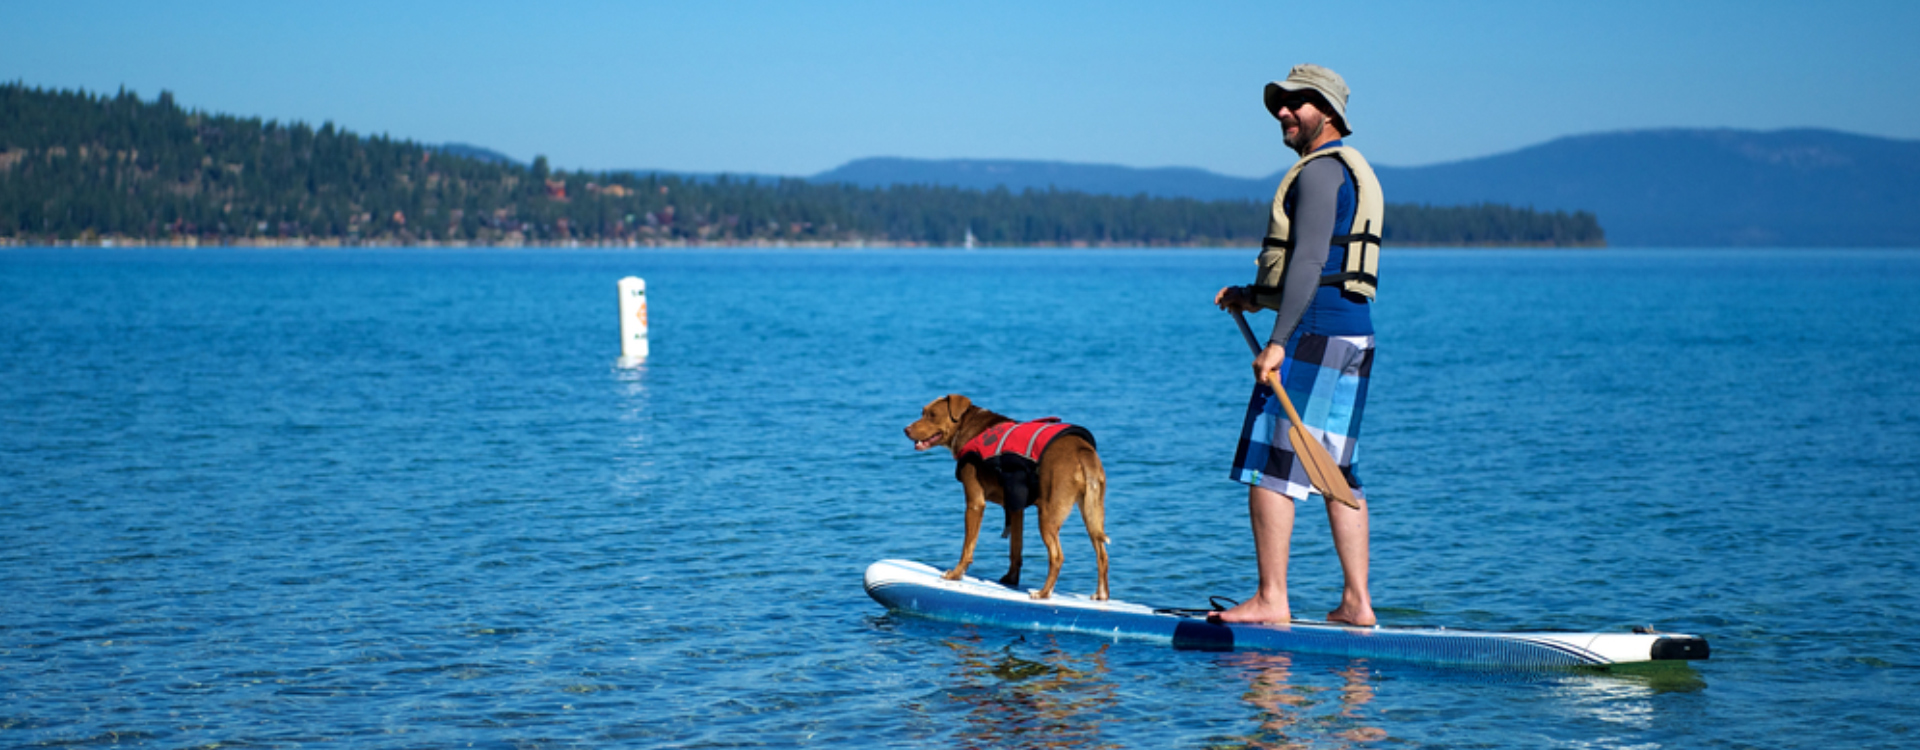 Stand-up Paddleboardbyg with Balboa Fun Tours